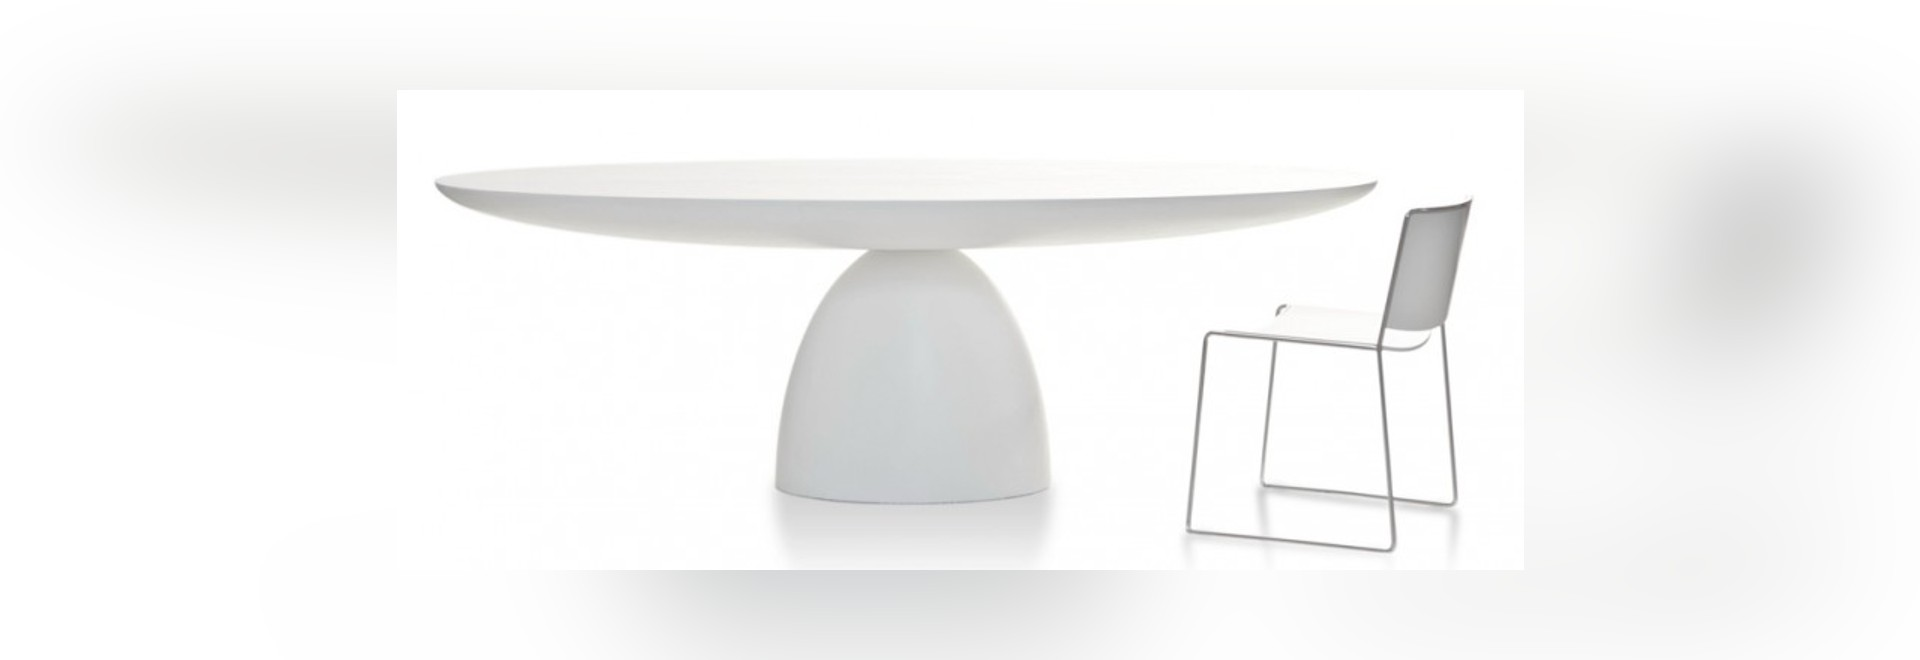 MILAN 2015: PORRO AND THE FRONT TO APPEAR AT ISALONI 2015